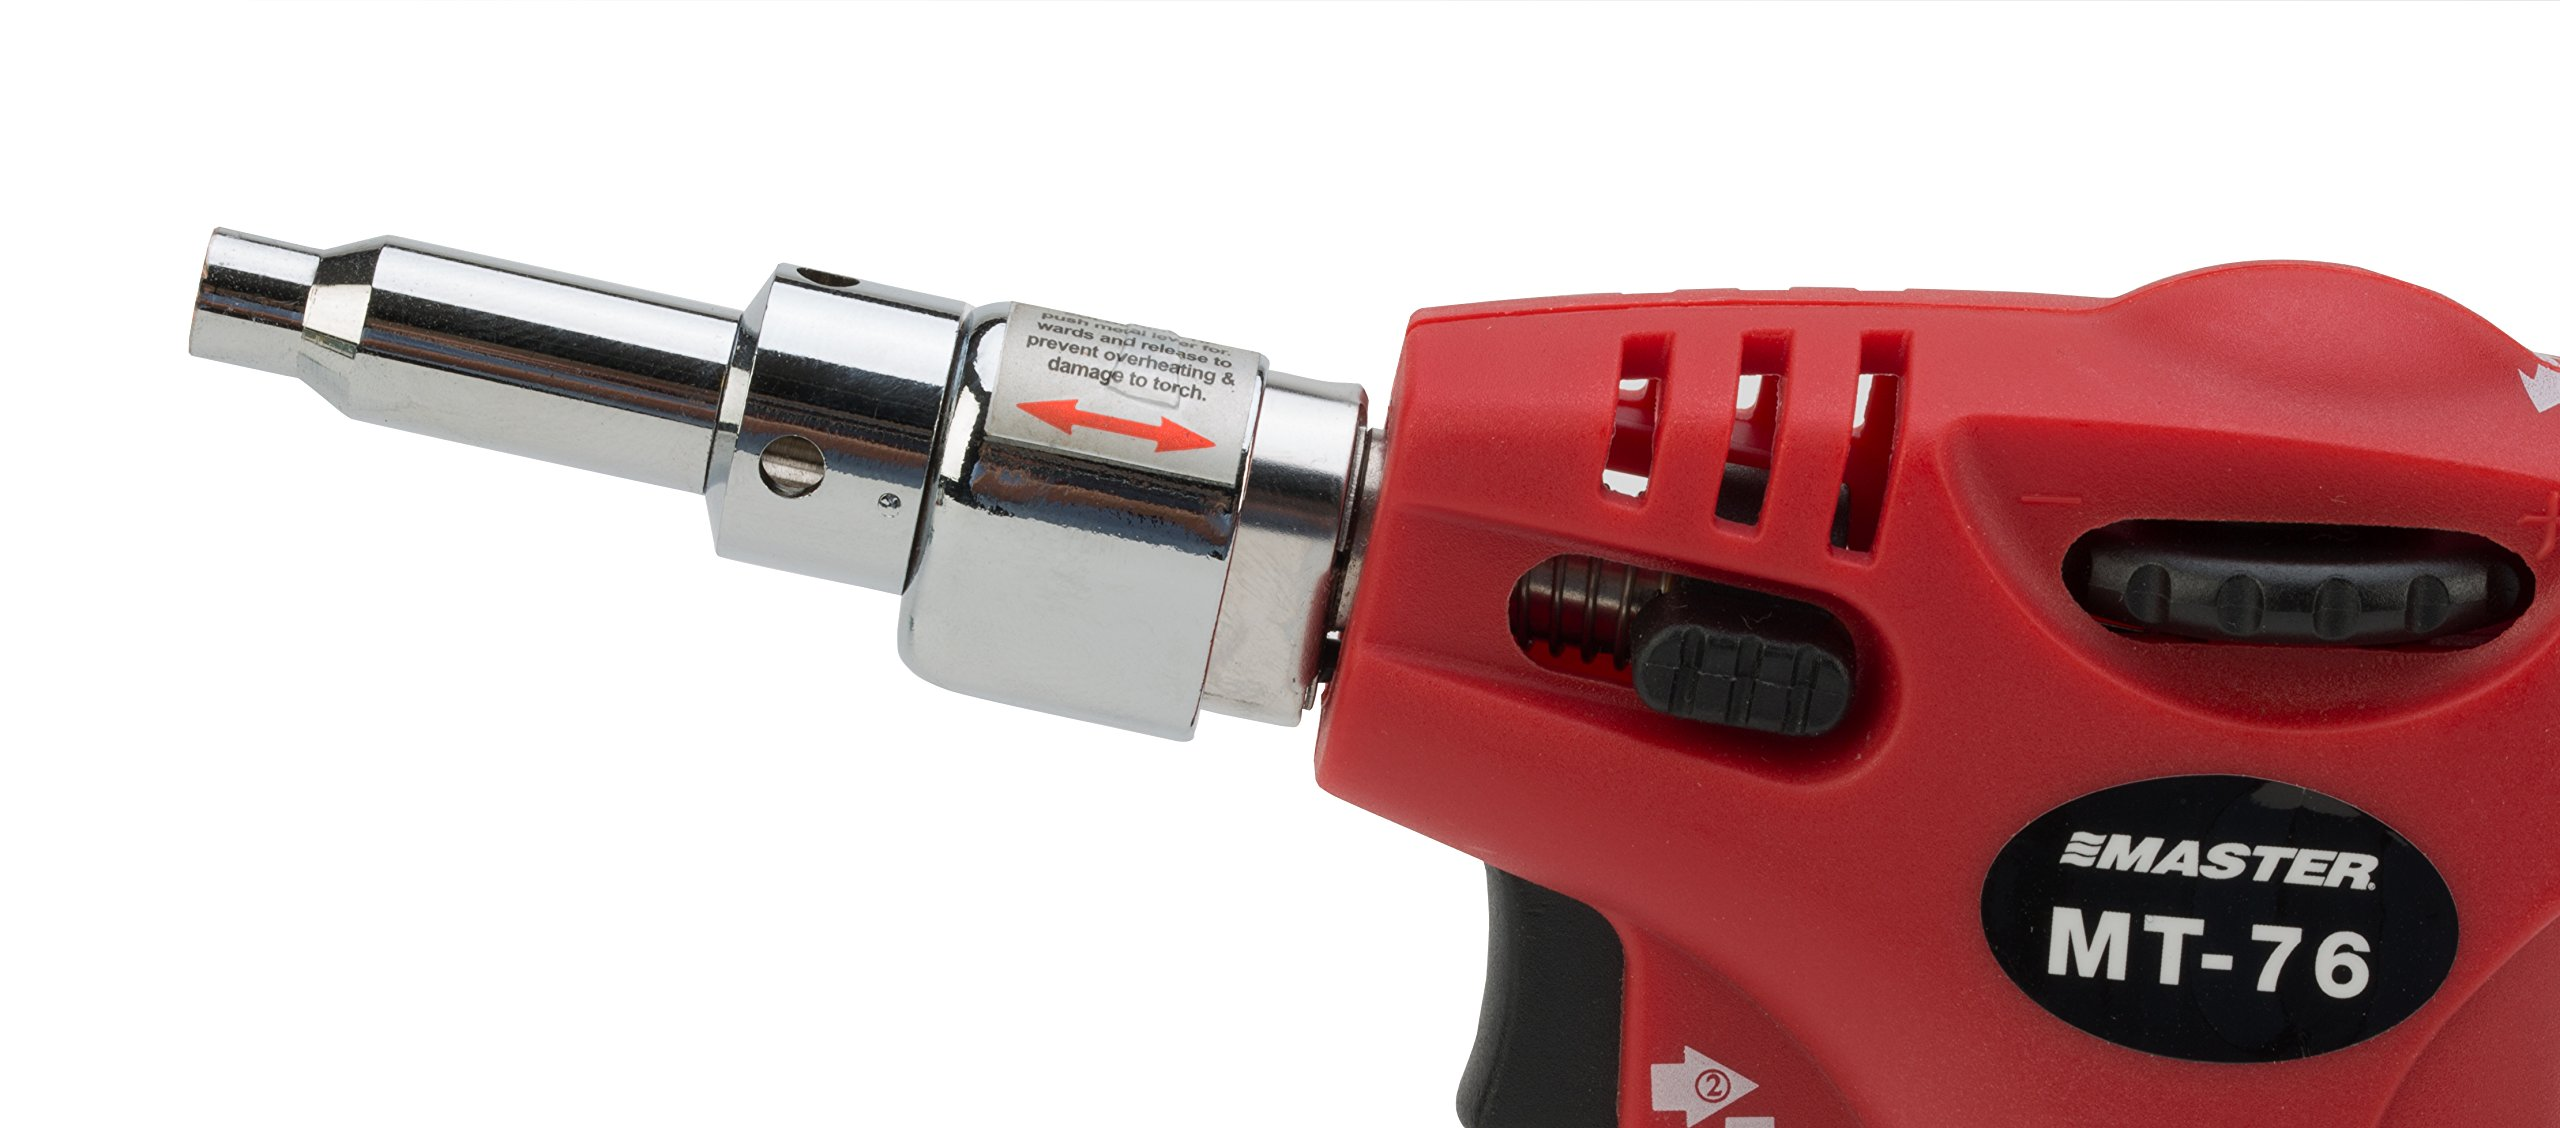 Master Appliance Triggertorch 3-in-1 Heat Tool with Soldering and Hot Air Tips by Master Appliance (Image #5)